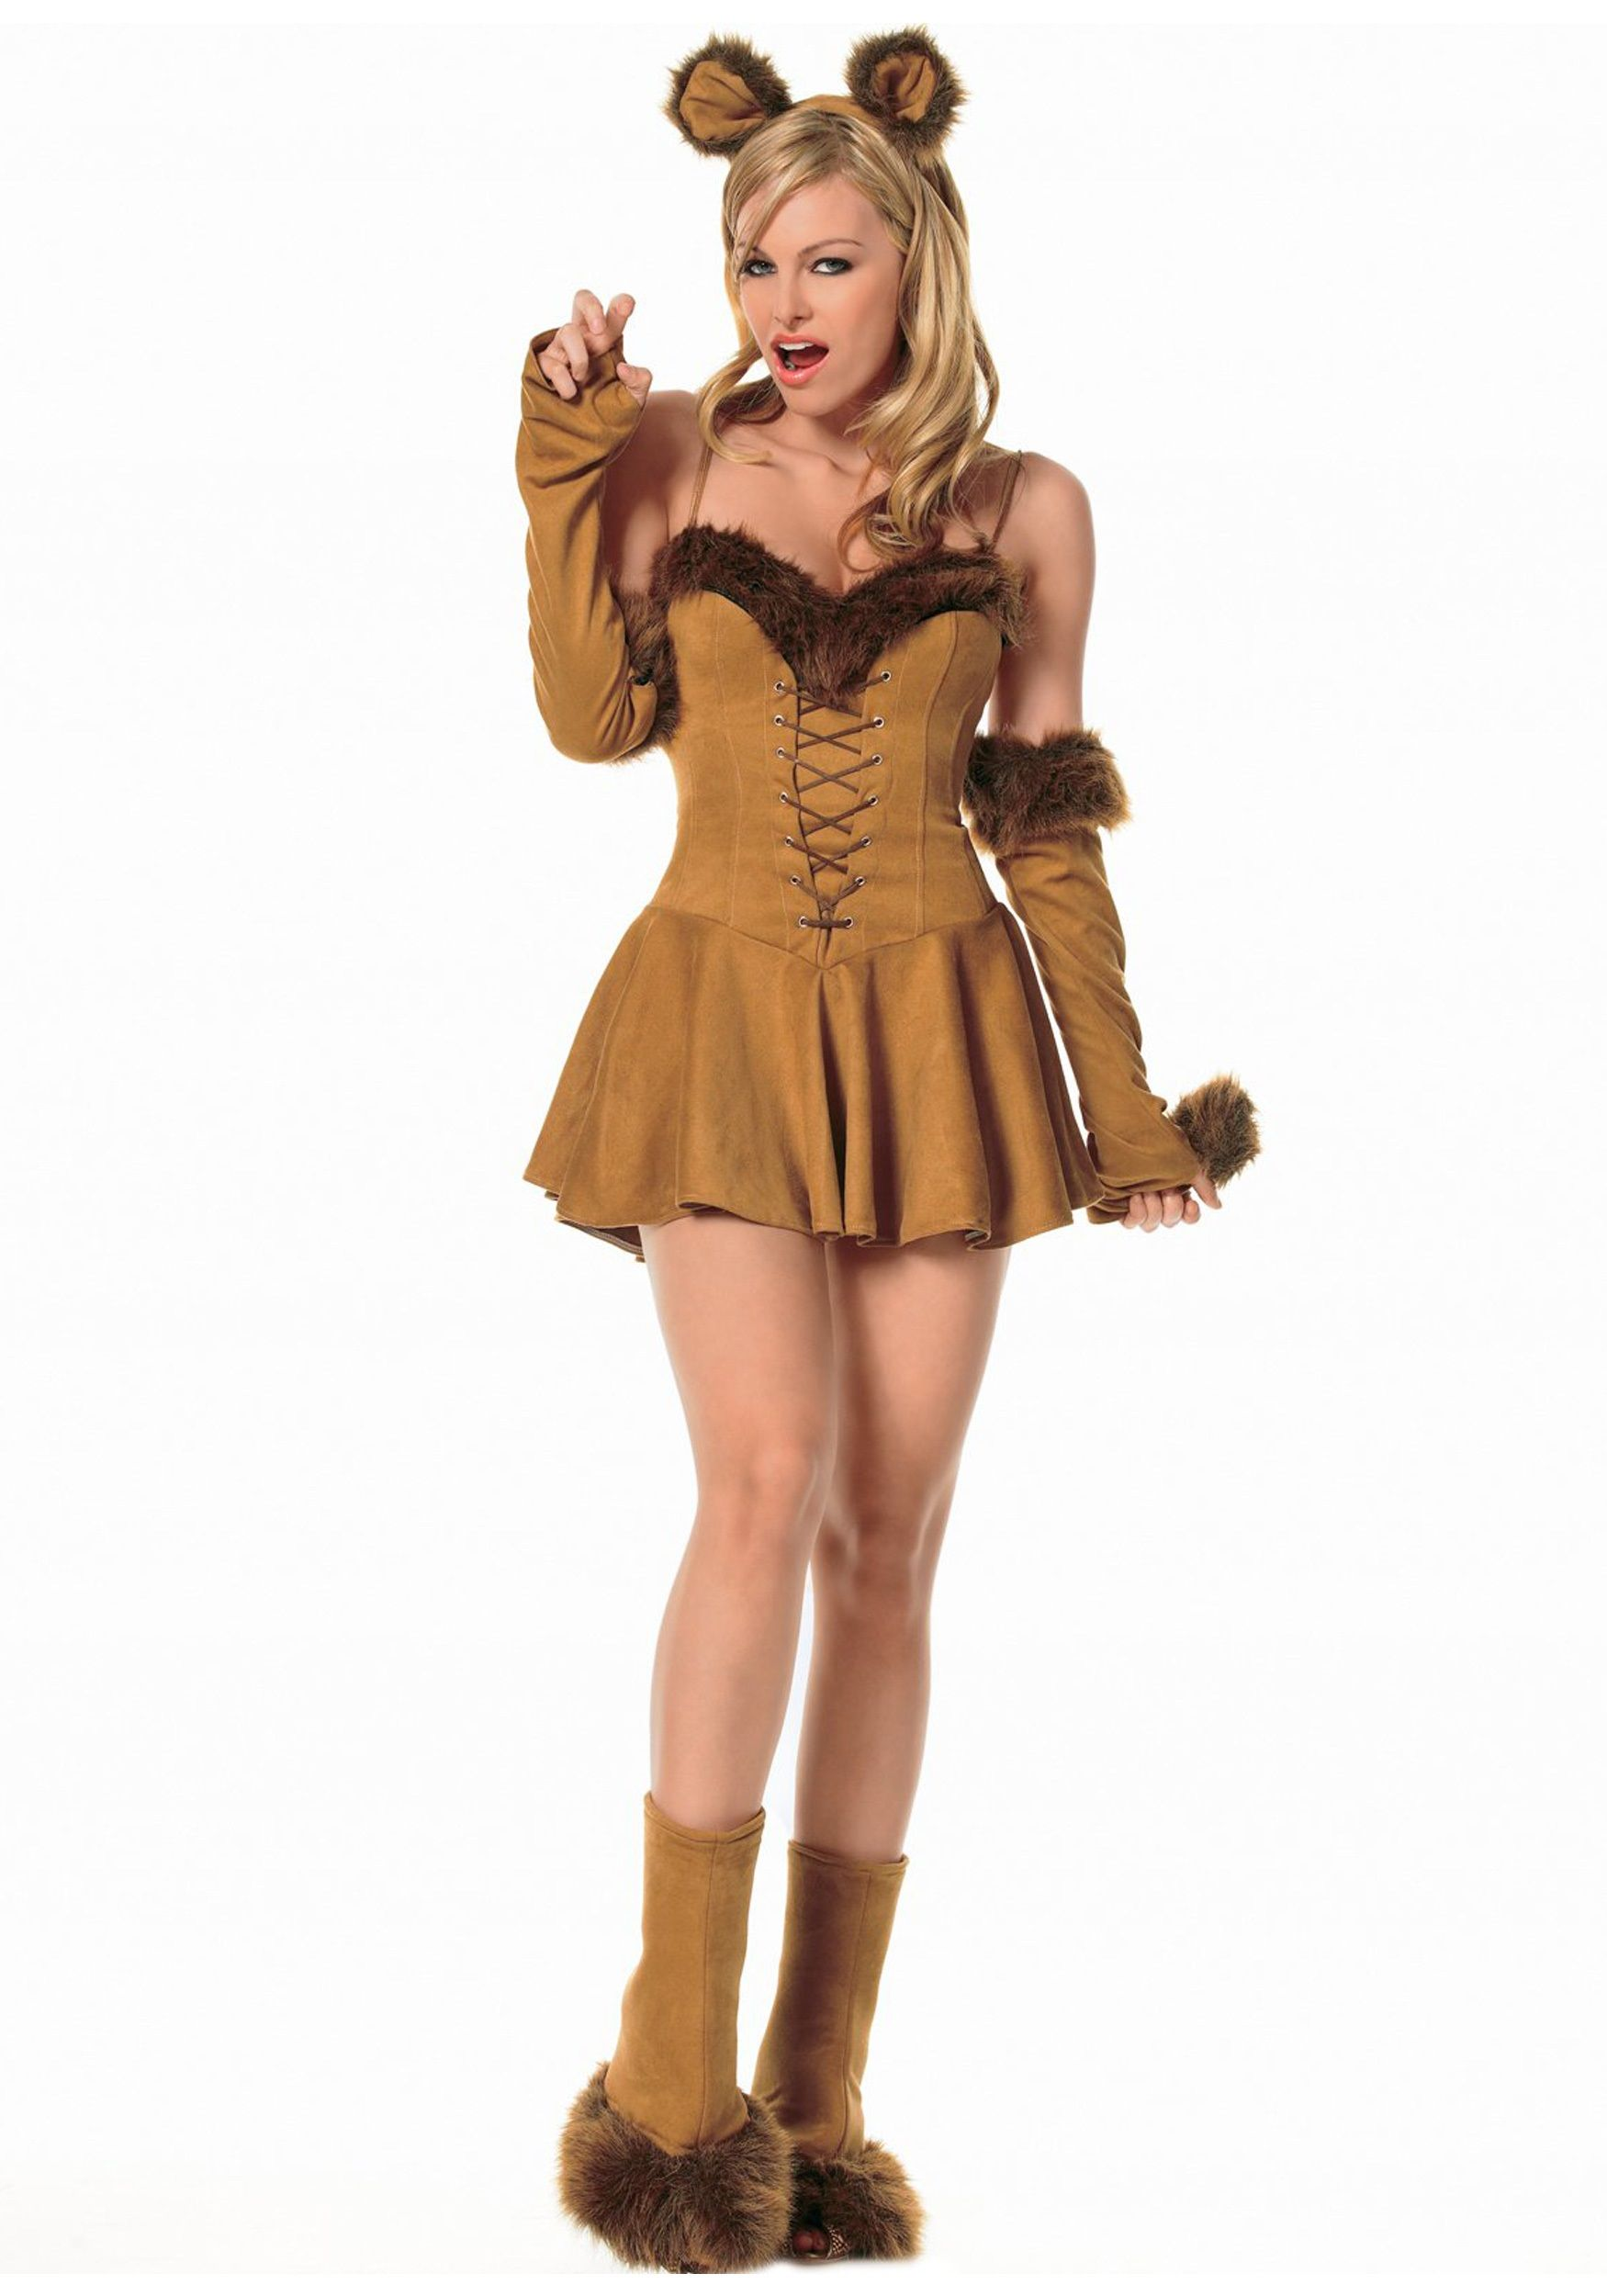 Sexy Cuddly Lion Girl Costume | Costumes | Pinterest | Costumes ...